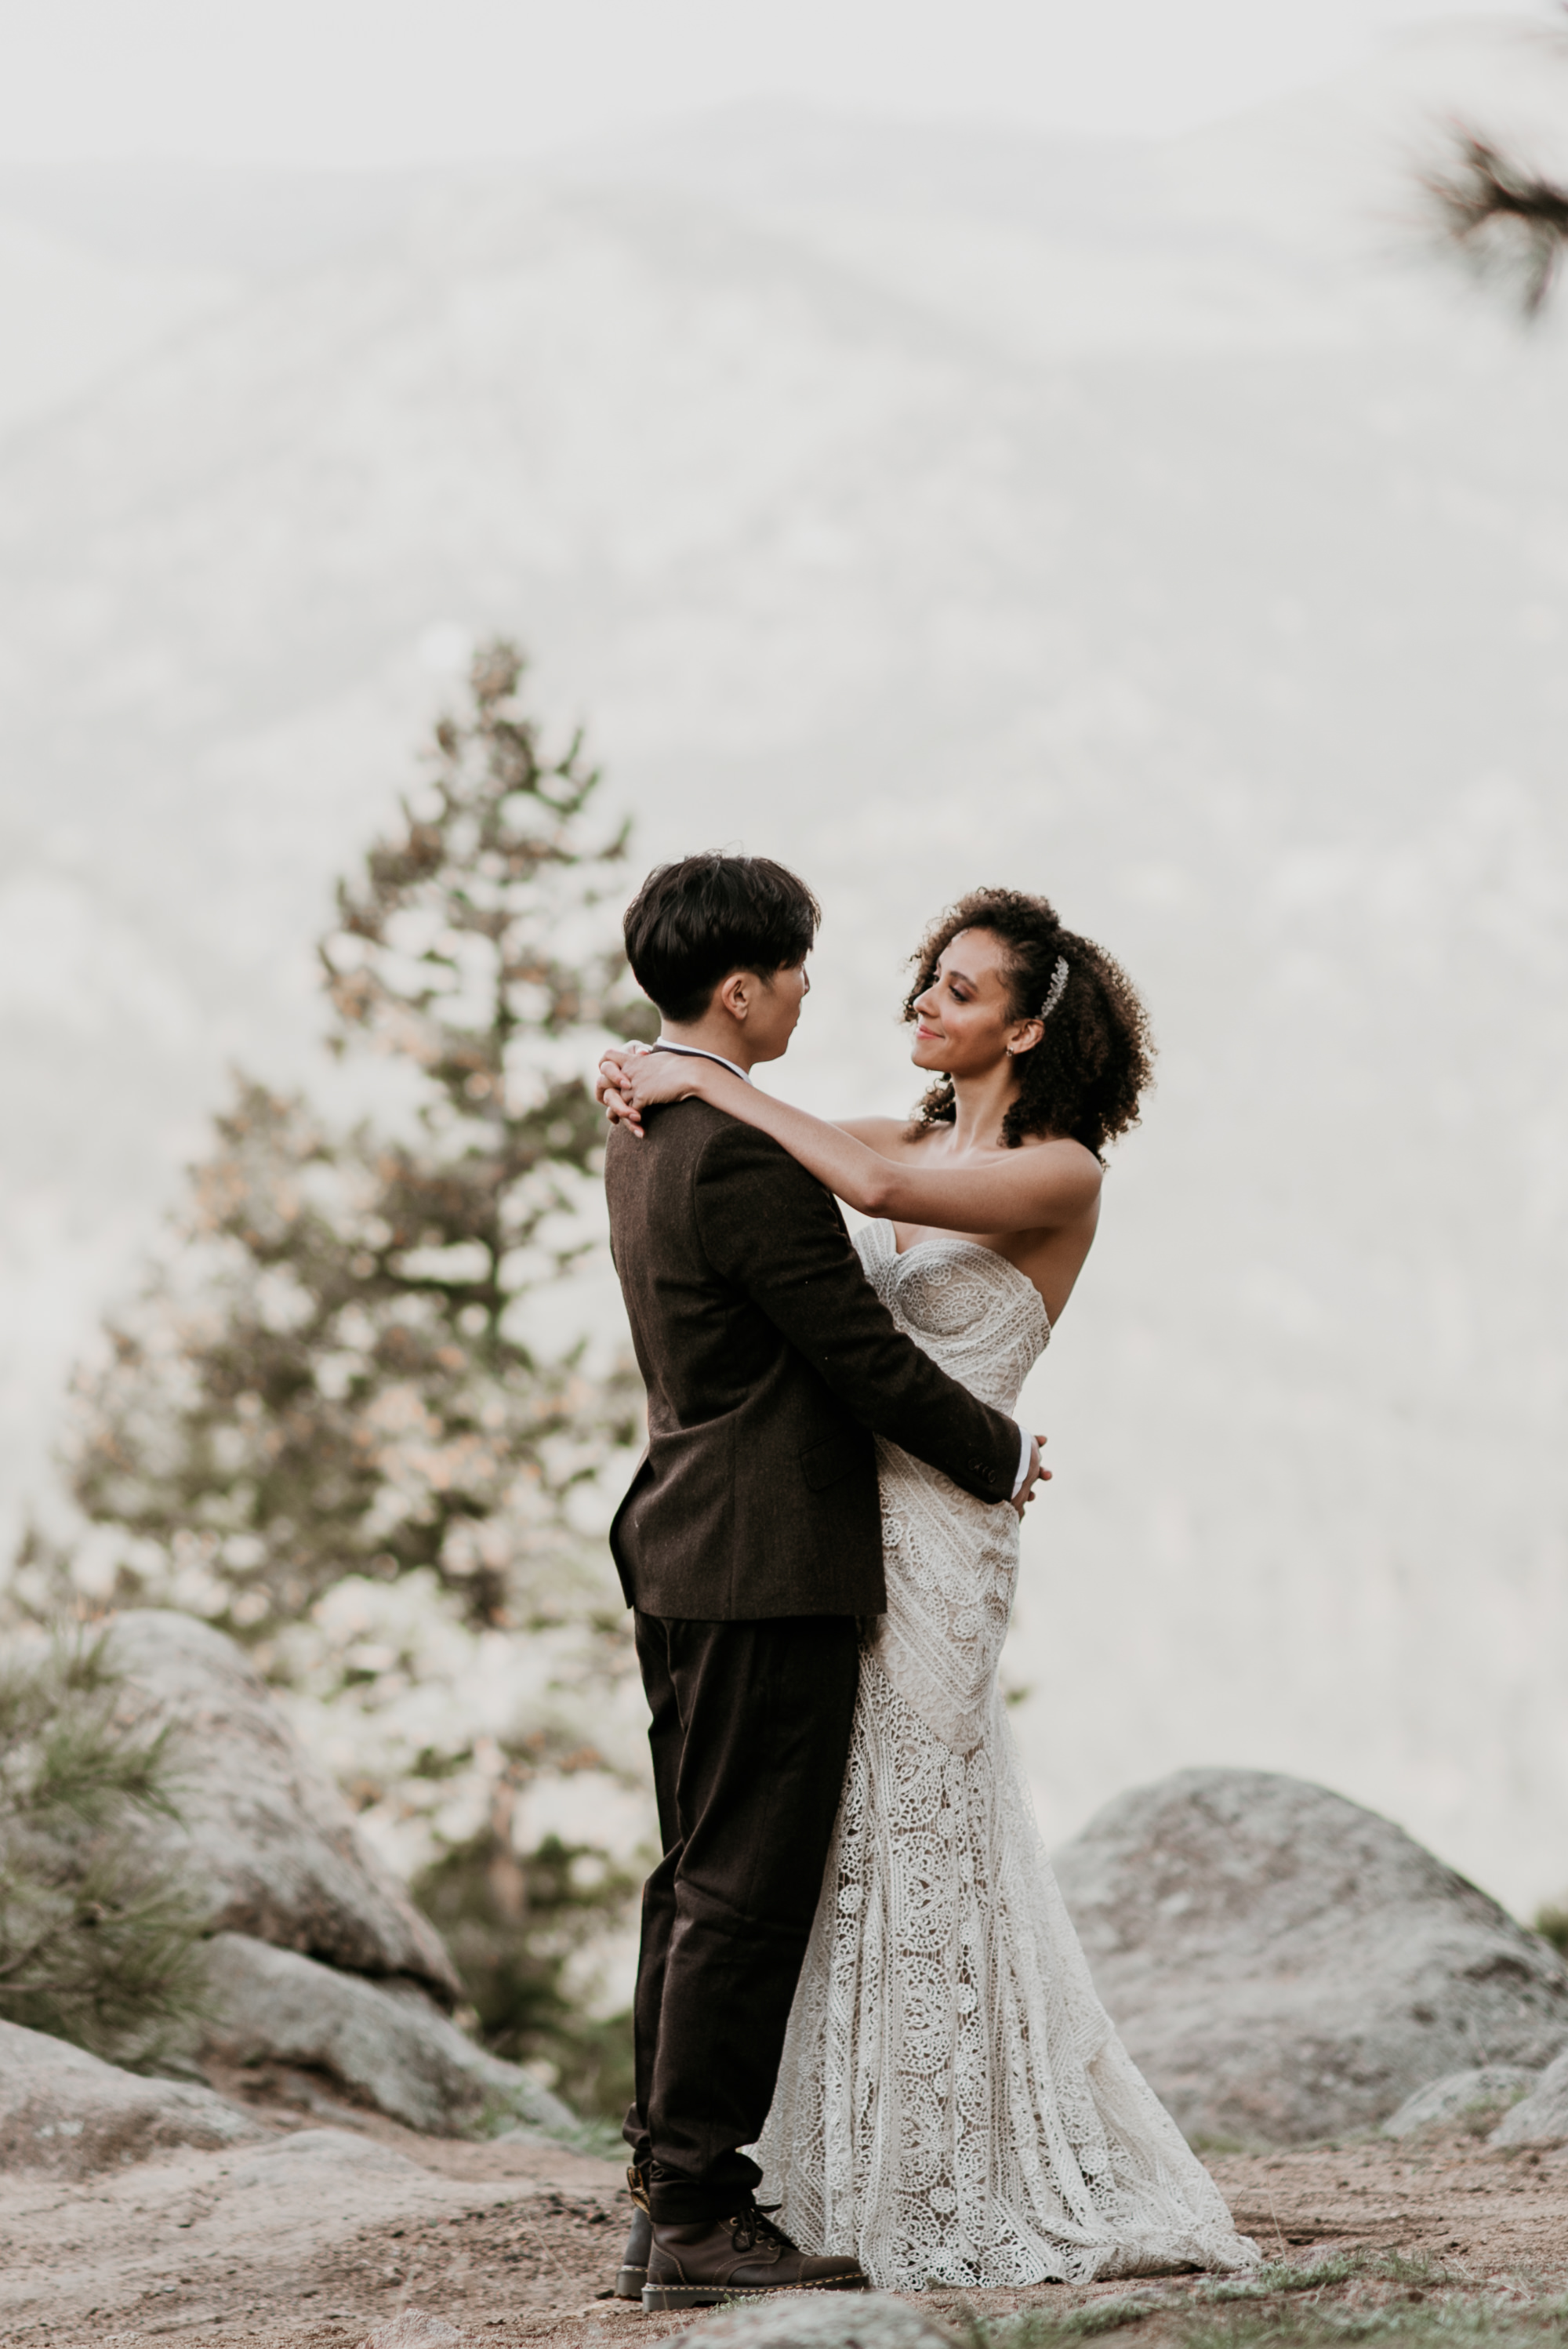 National Park elopement locations and photographers.